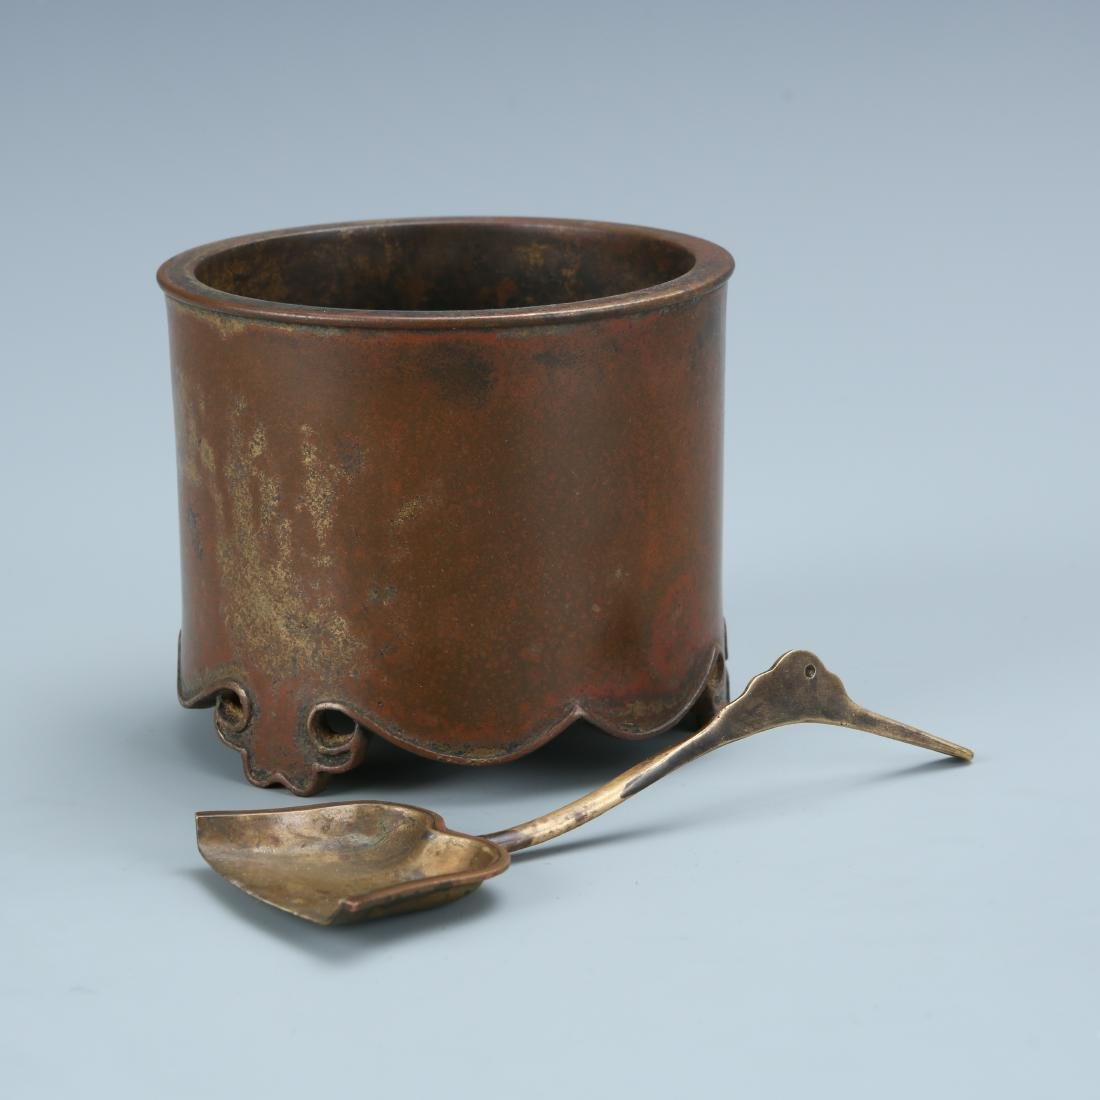 Bronze Washer with Spoon, Marked